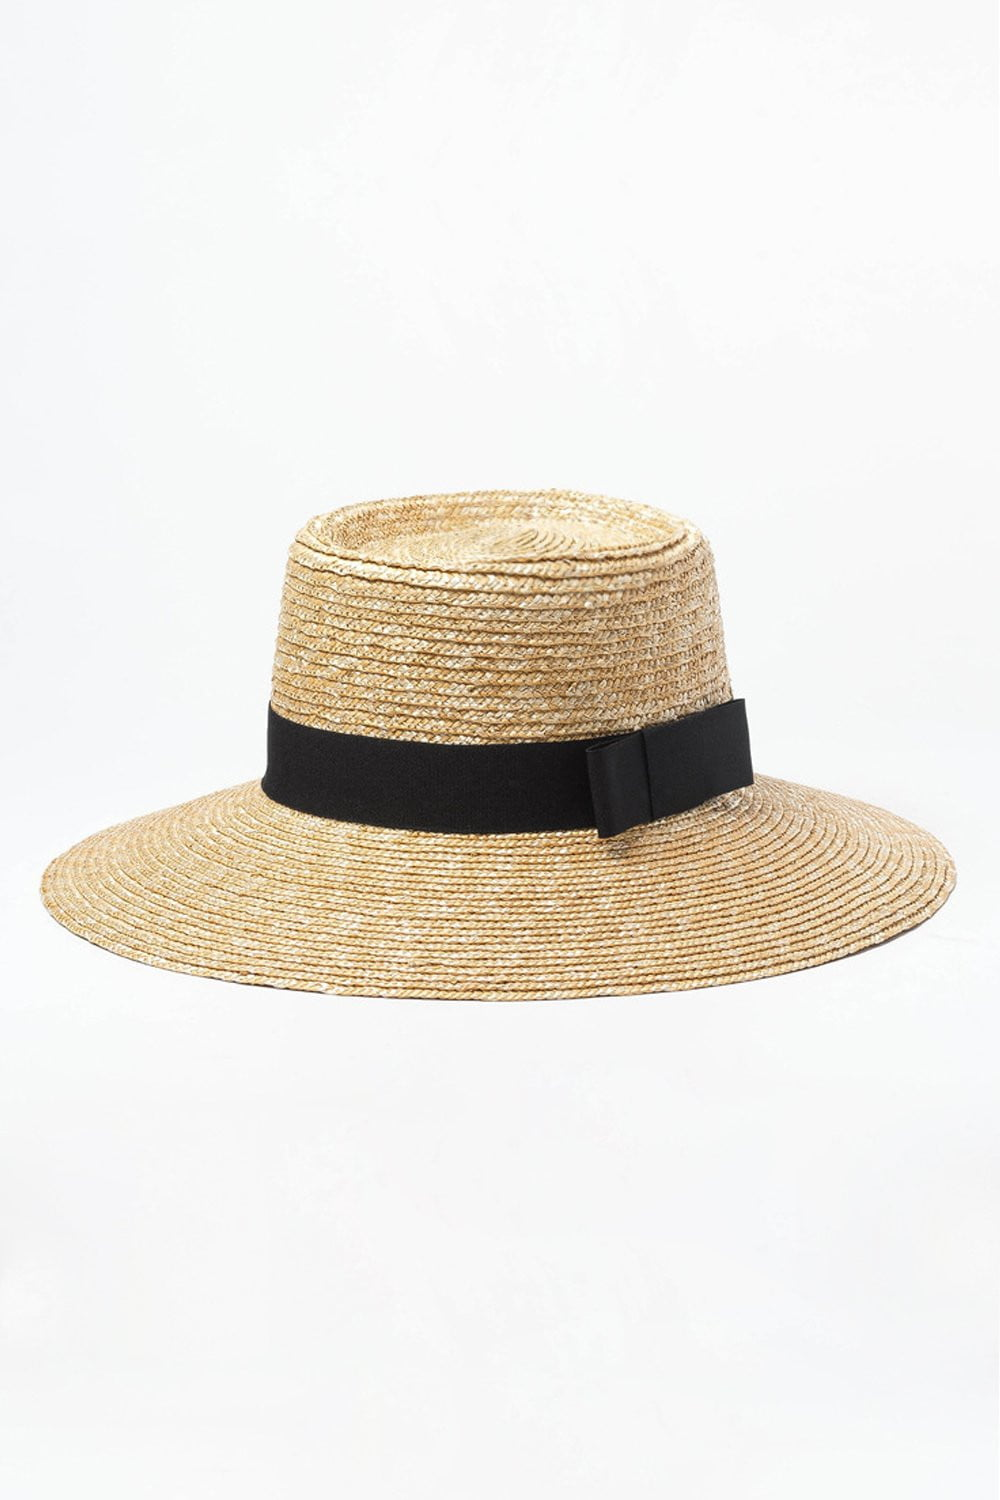 Black Bow Trimmed Wheat Straw Flat Boater (2207890079803)